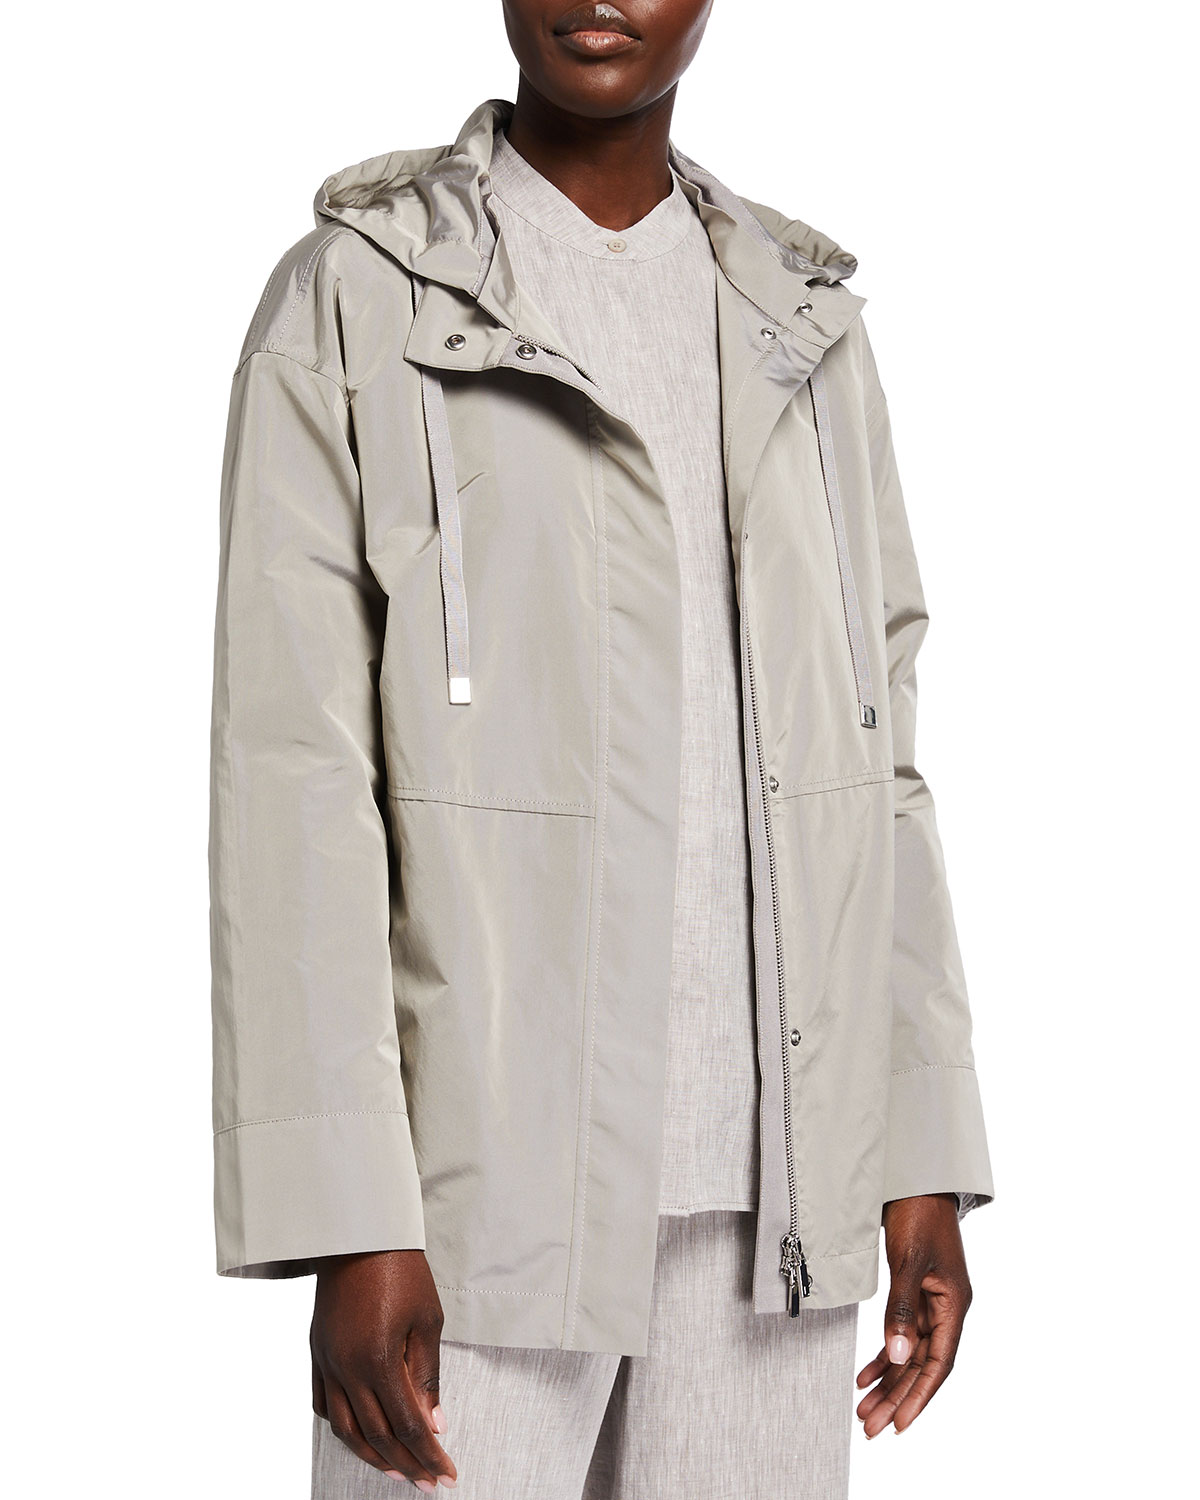 Lafayette 148 ANSEL JACKET WITH REMOVABLE HOOD